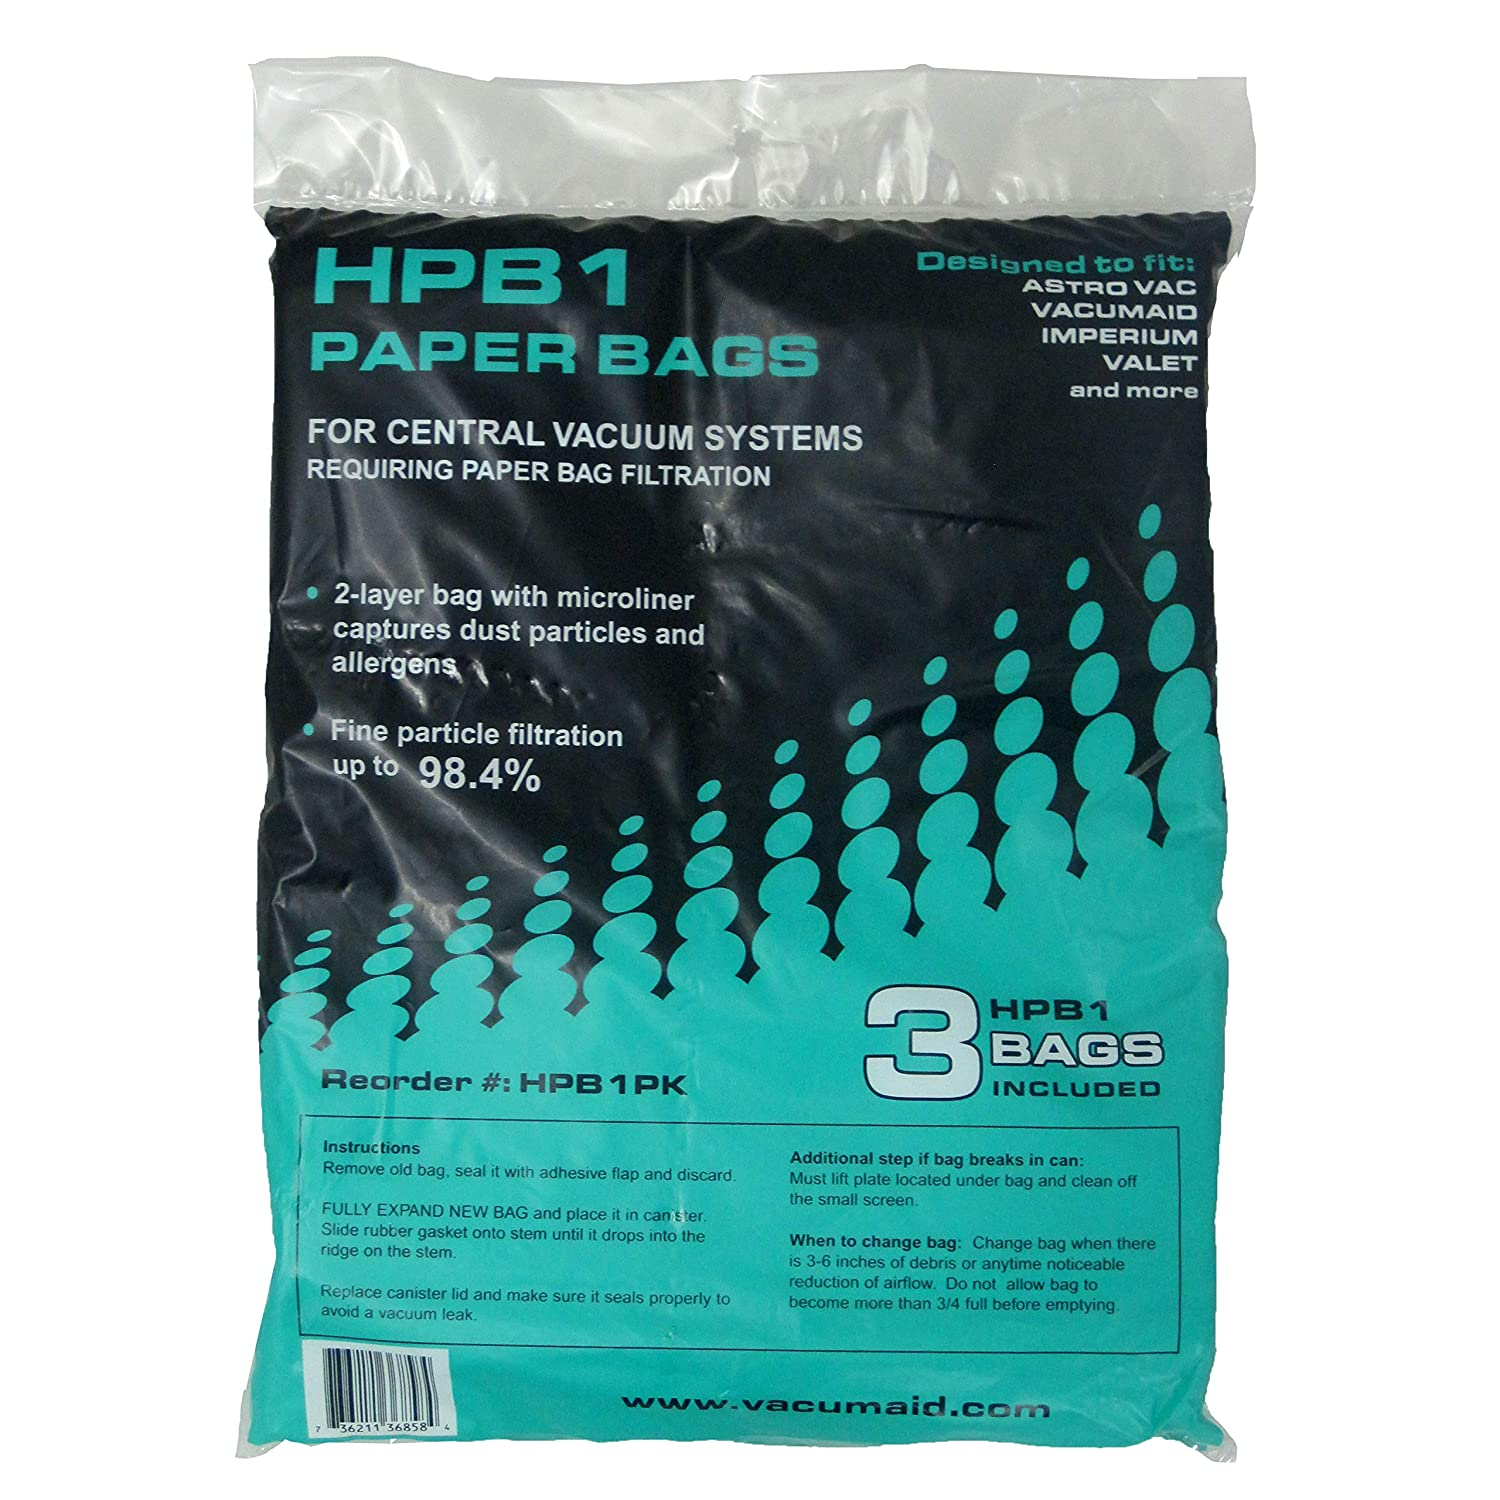 for VacuMaid Garage Vac AstroVac /& Valet Central Vacuum VacuMaid Central Vacuum Qty. 3 bags HPB1 Sealed Paper Bag